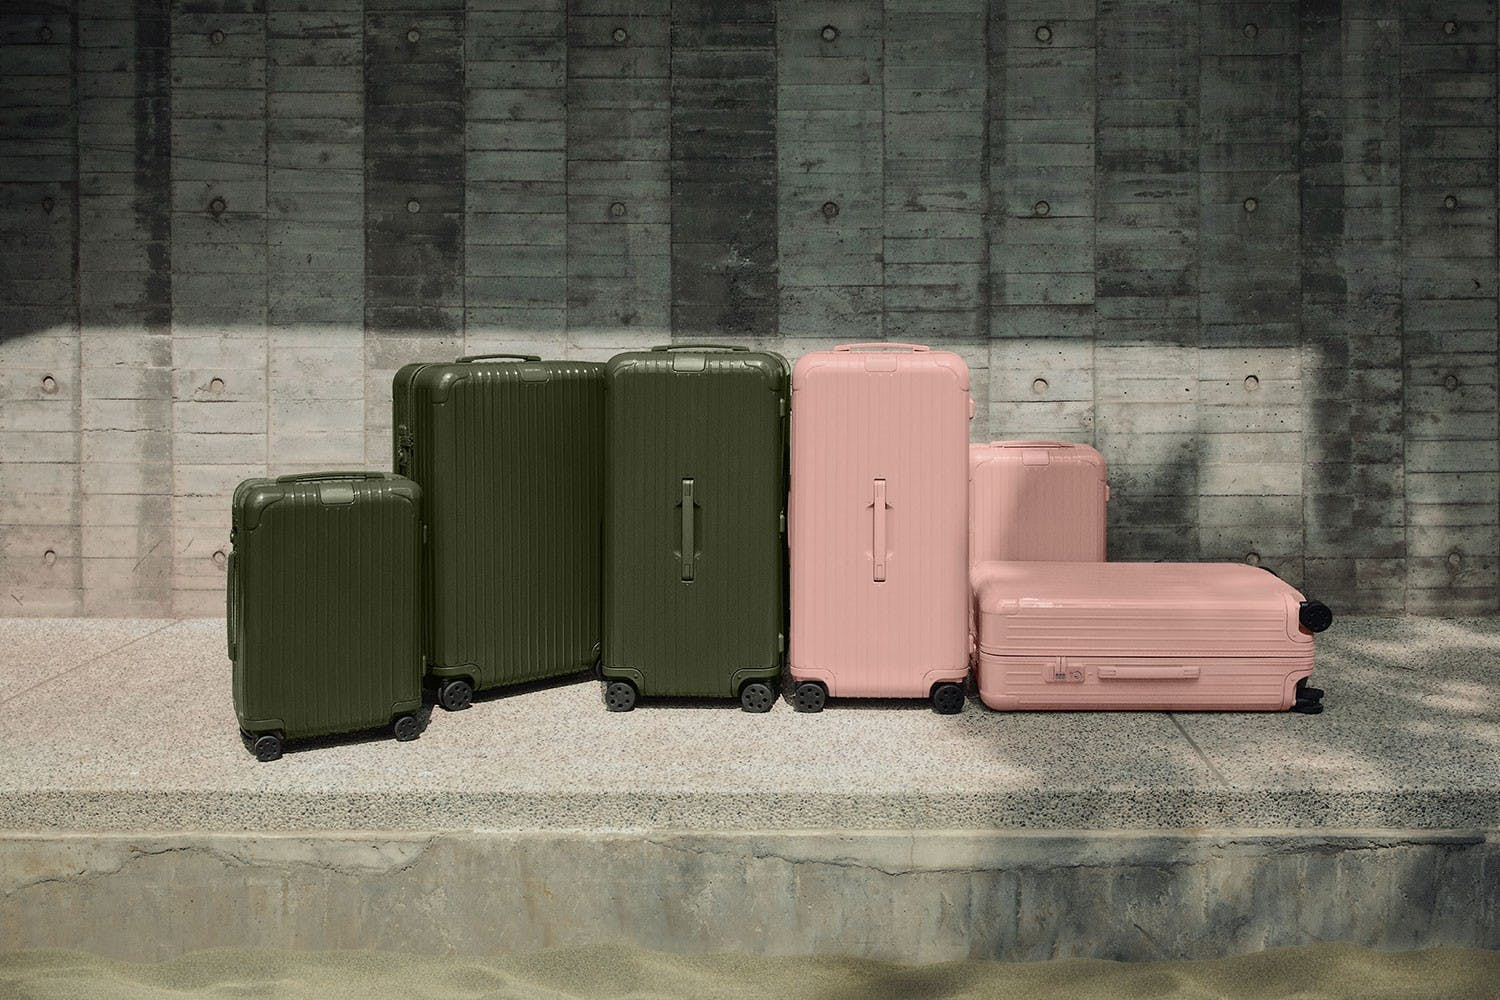 RIMOWA ESSENTIAL NEW COLORWAYS: NEW DESERT ROSE AND CACTUS